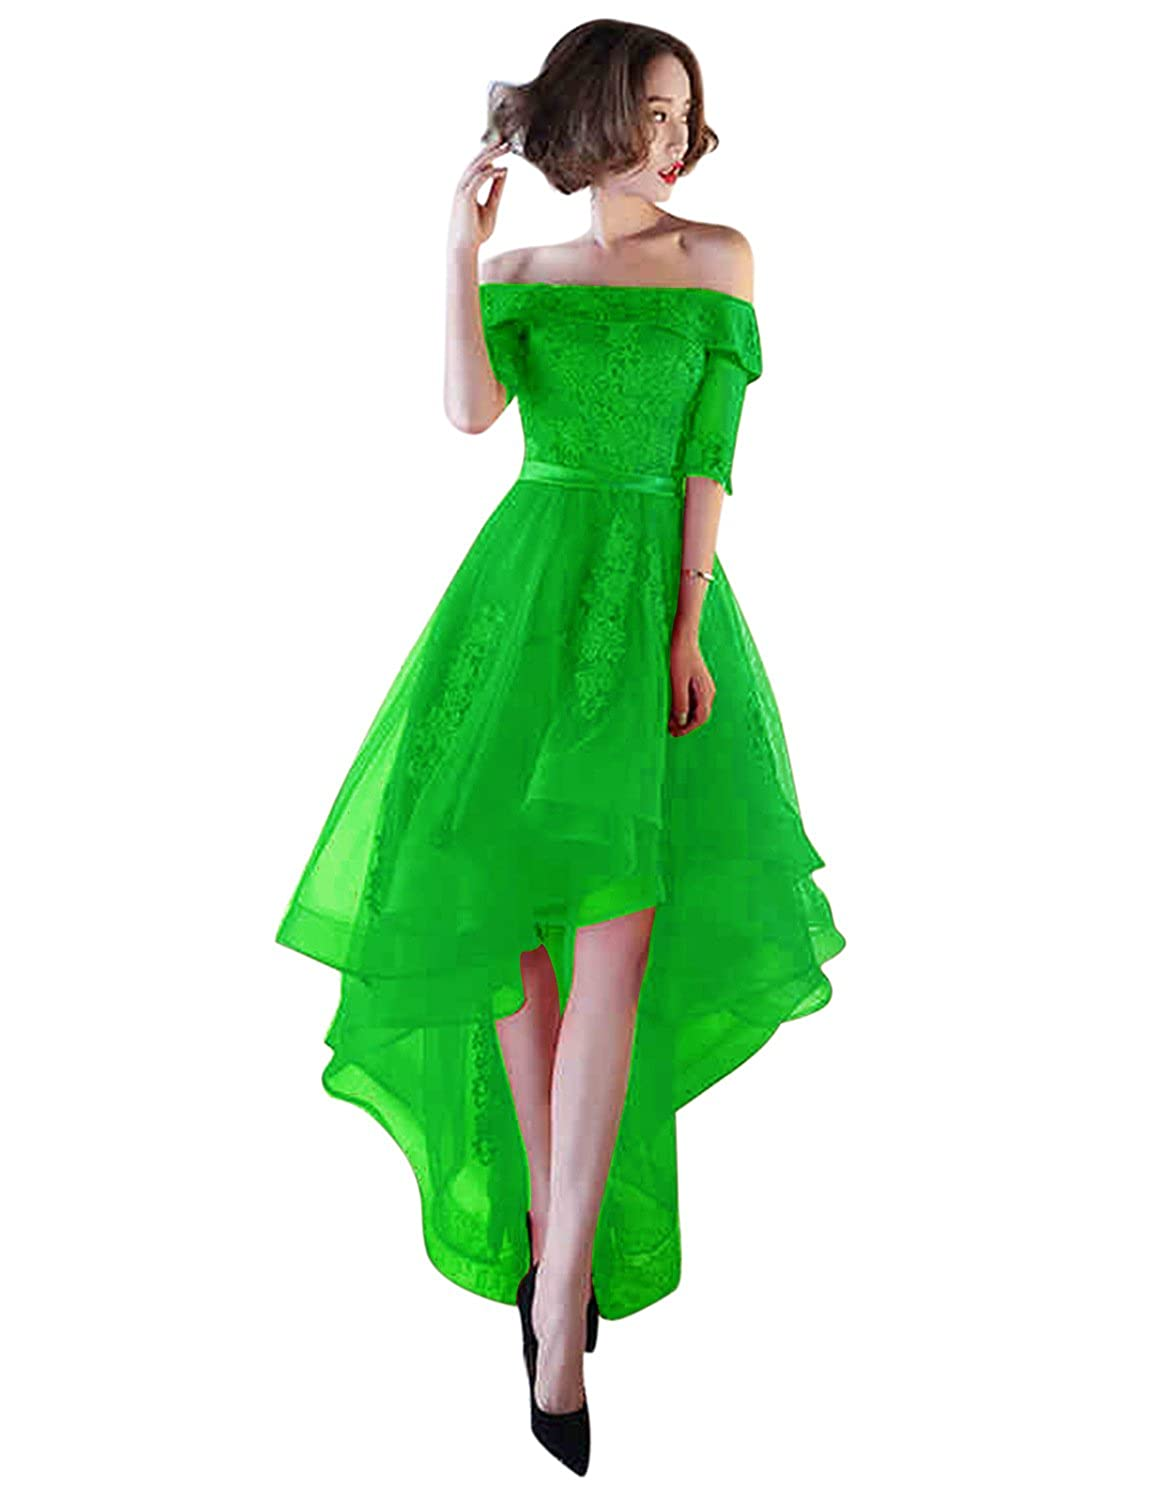 Bright Green BessWedding Women's Tulle High Low Homecoming Dresses Short 2018 Formal Prom Gown BHZ707